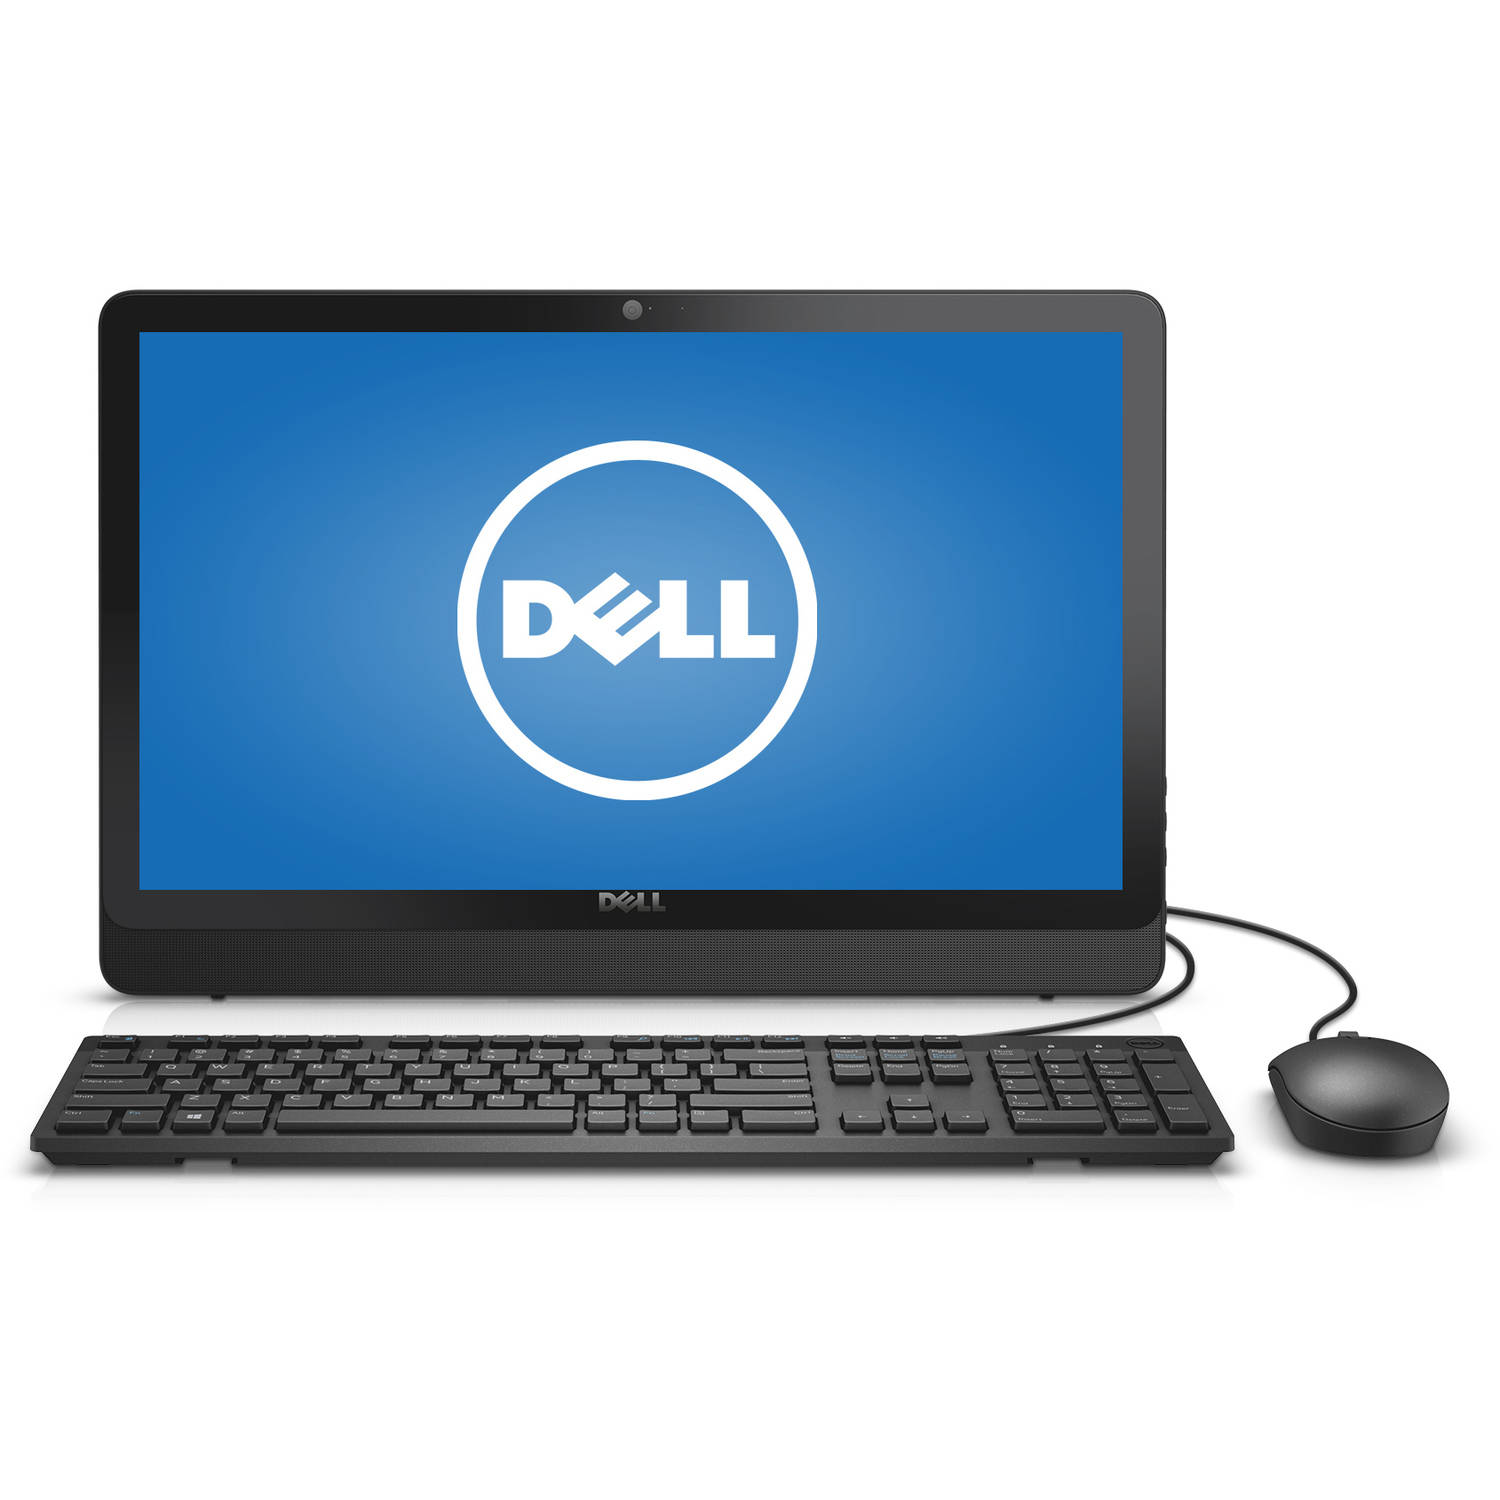 "Click here to buy Dell Black Bezel Inspiron 3052 All-In-One Desktop PC with Intel Celeron N3150, 4GB Memory, 19.5"" Monitor, 500GB... by Dell."